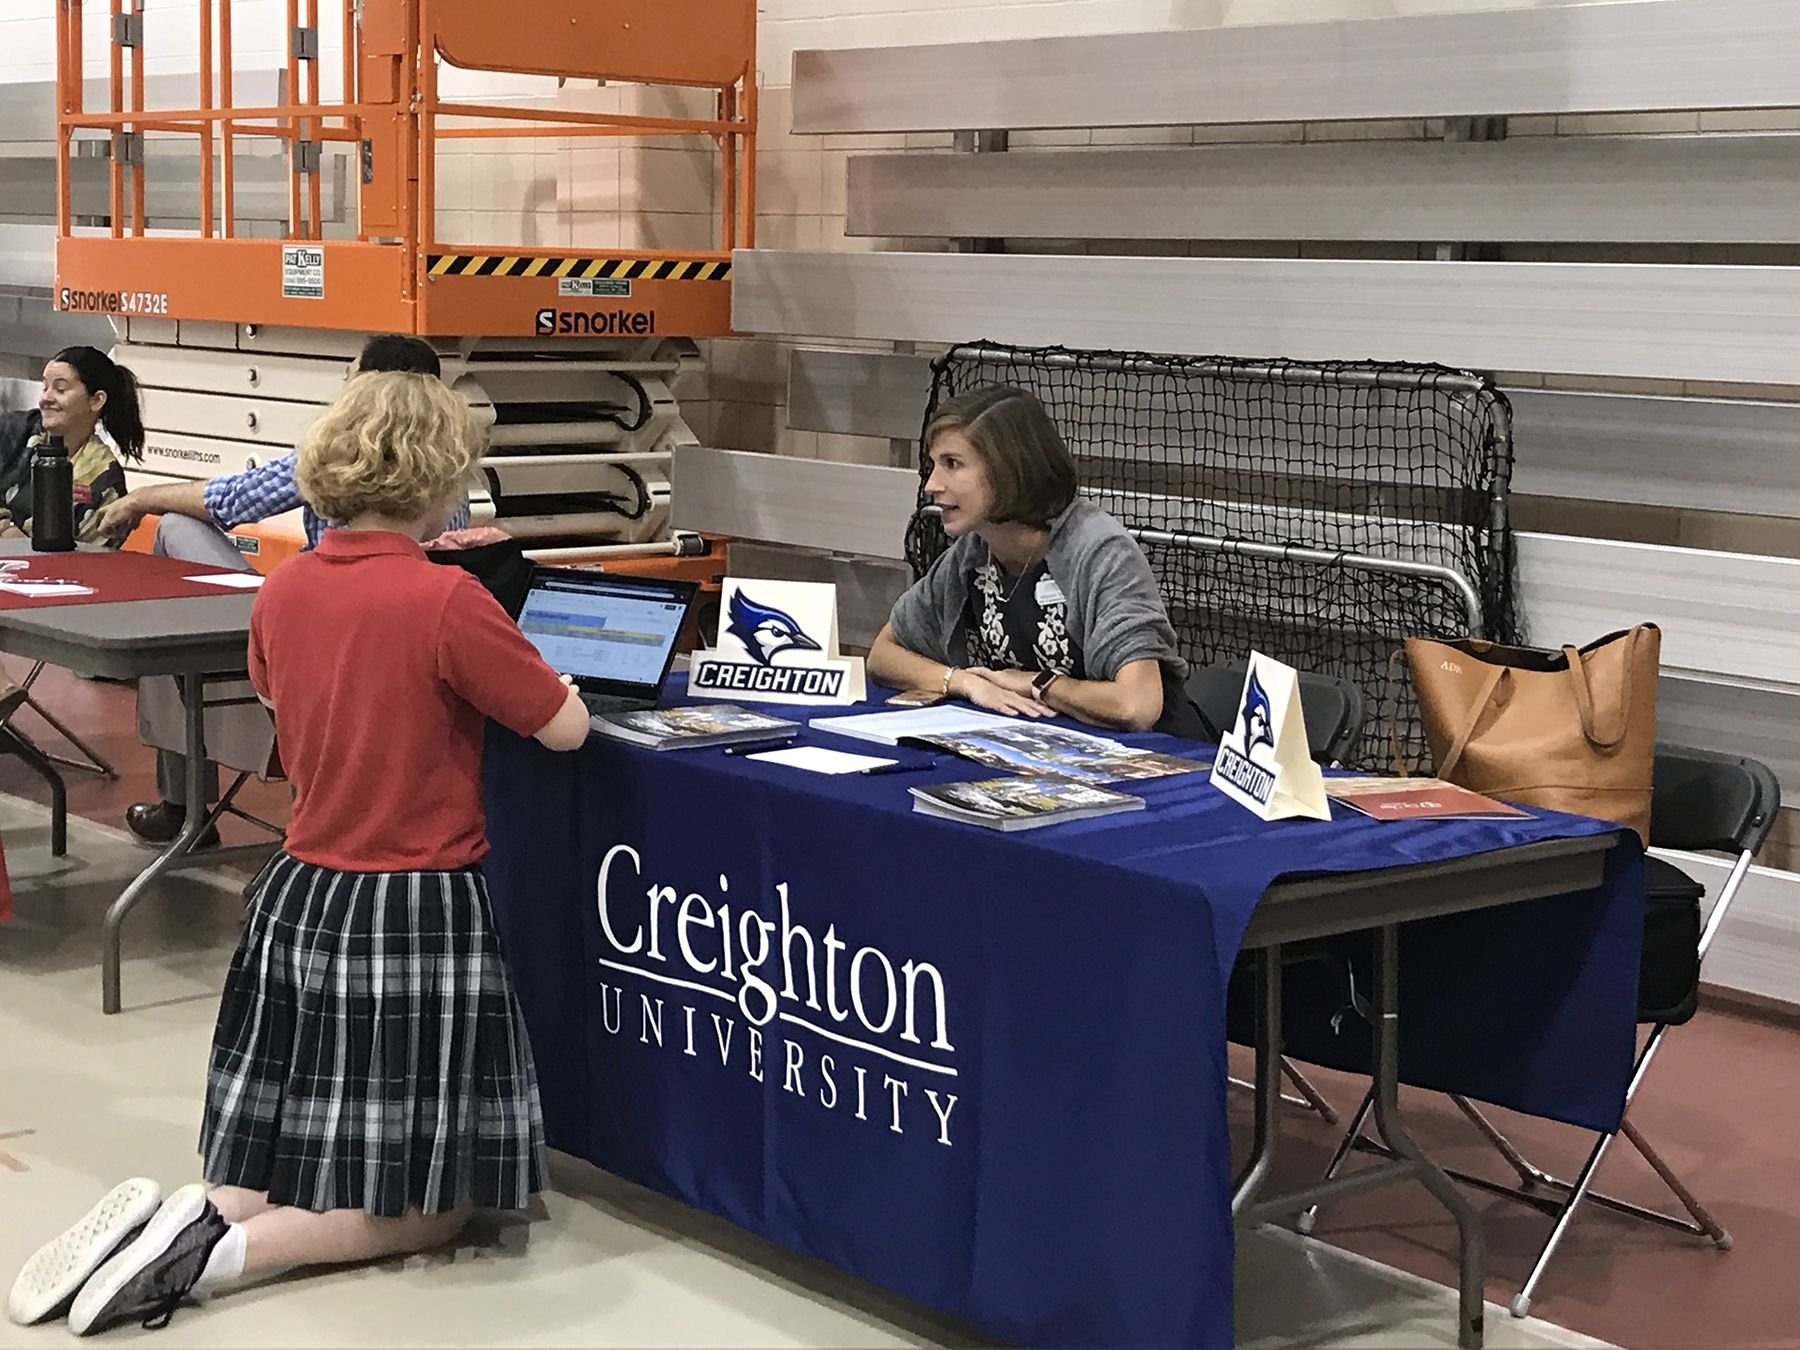 A CJ students signs up during a visit with a rep from Creighton University